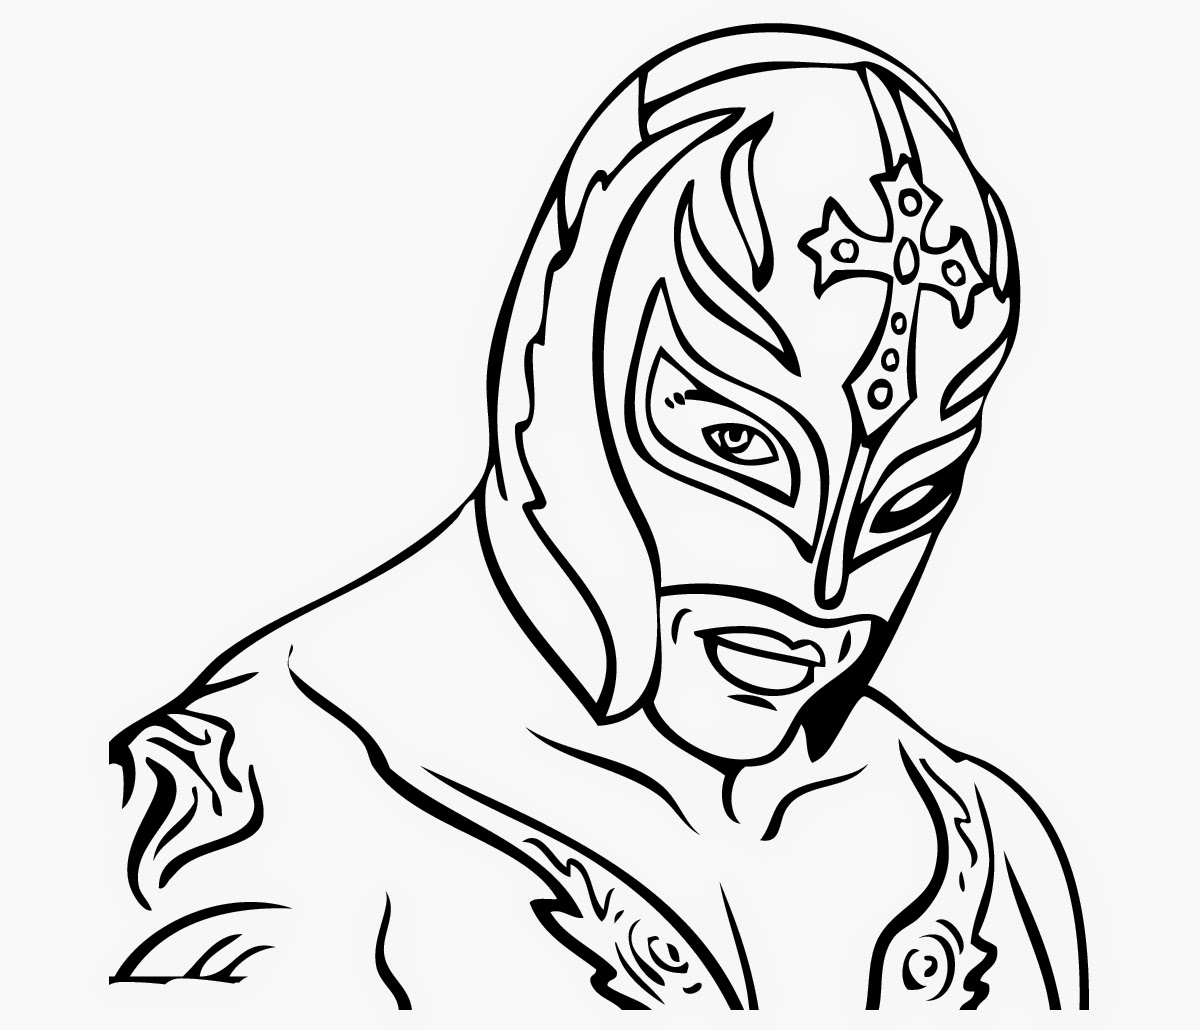 1200x1030 Printable Wwe Wrestling Coloring Pages Inside